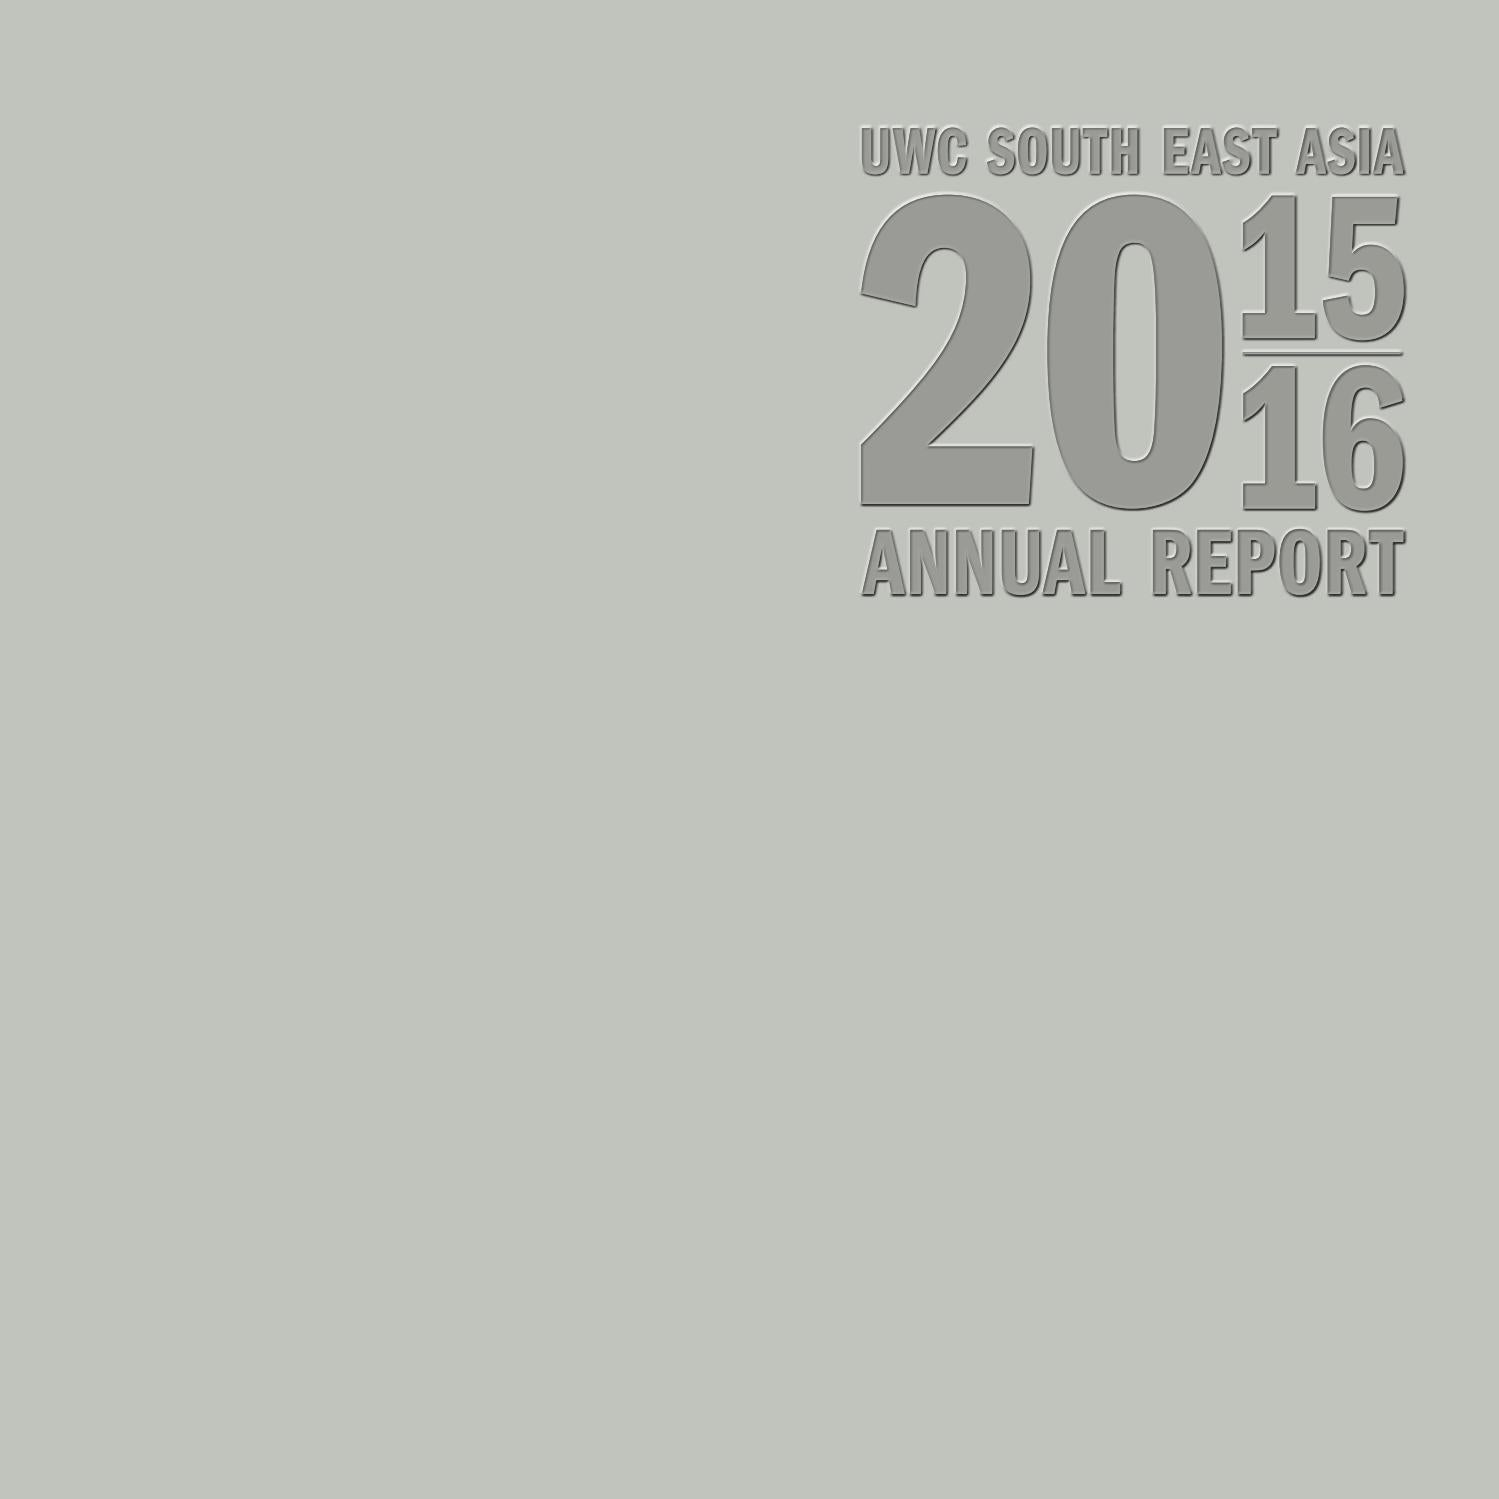 Uwcsea 2015 2016 Annual Report By Issuu Manzone Statement Pants Grey Abu 31